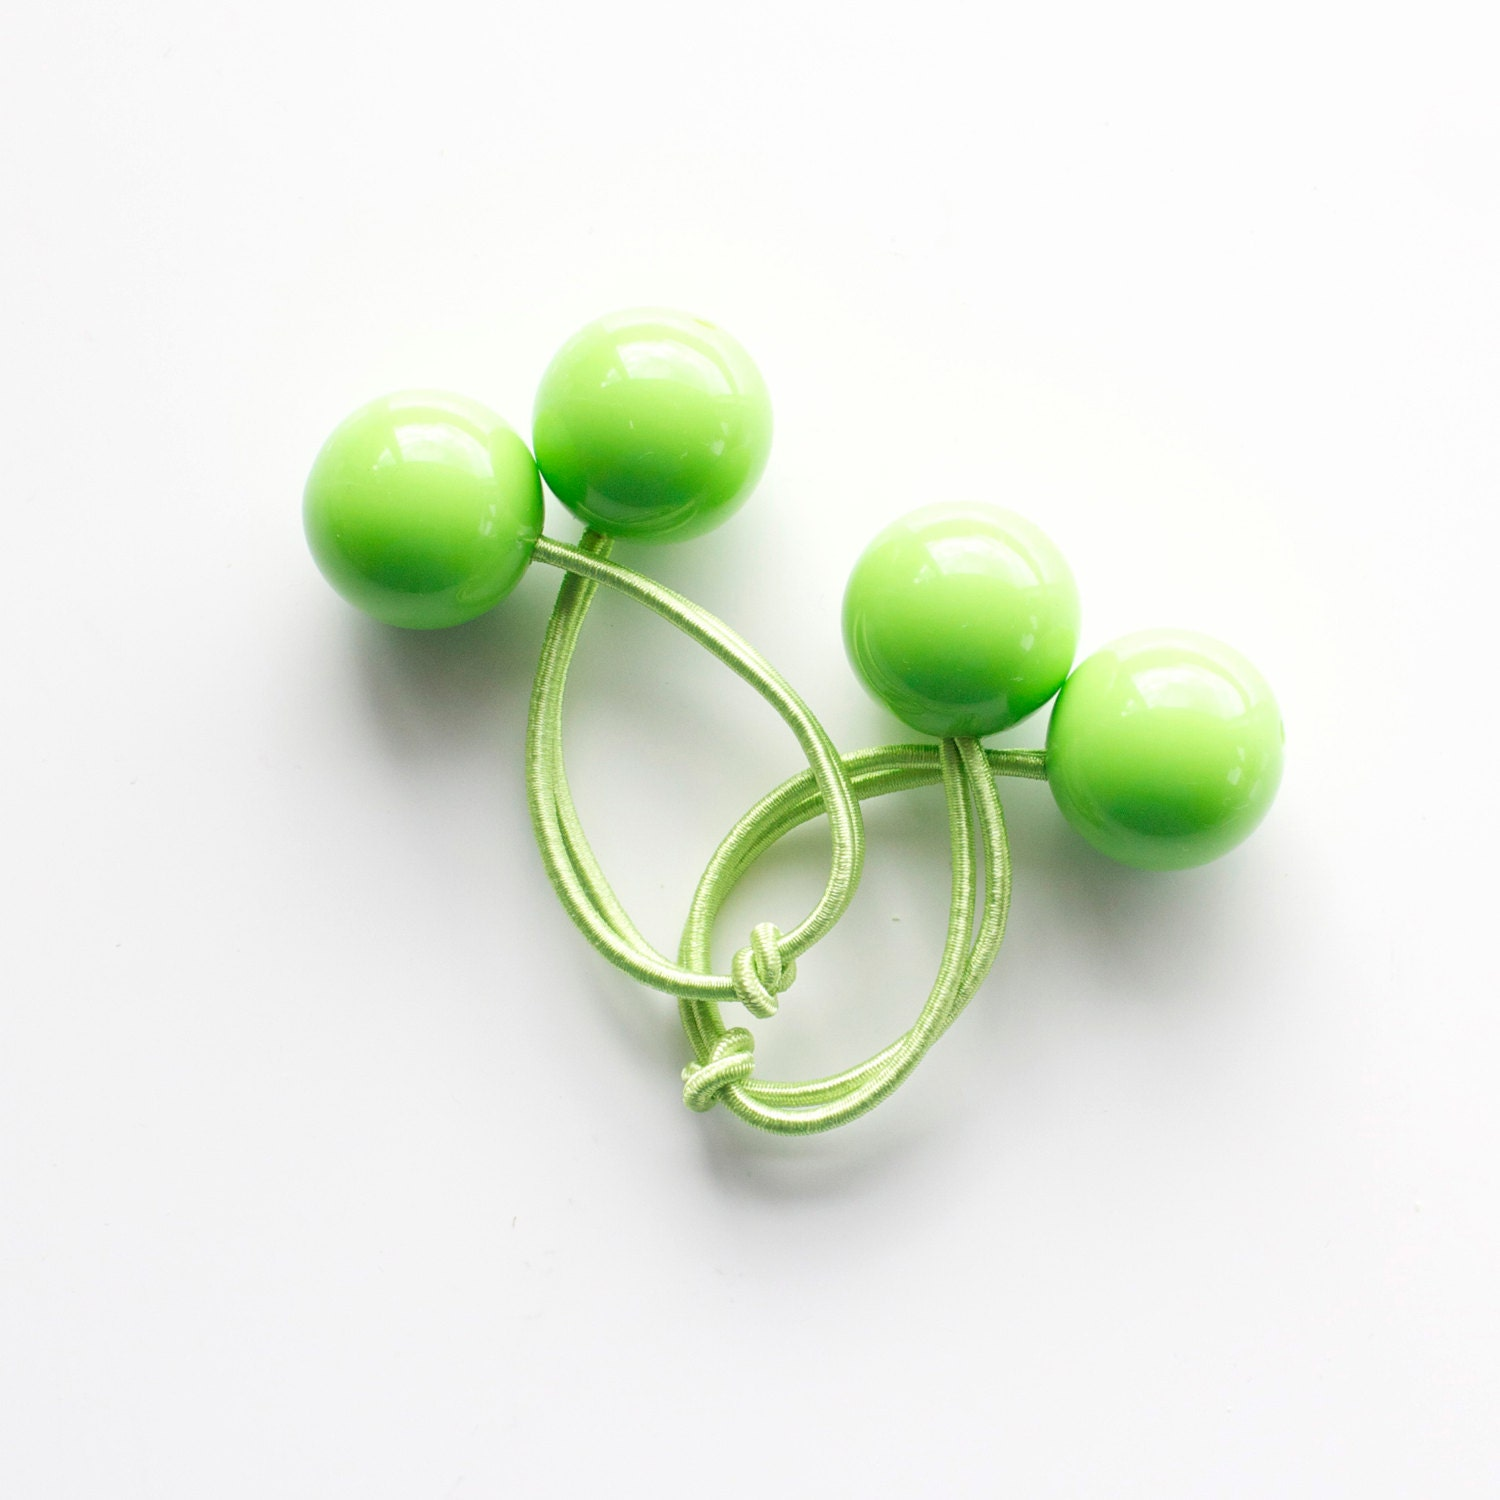 LIGHT GREEN bobbles. Hair ties. Elastic hair ties. Funky. Light Green ... c8bc277e11a